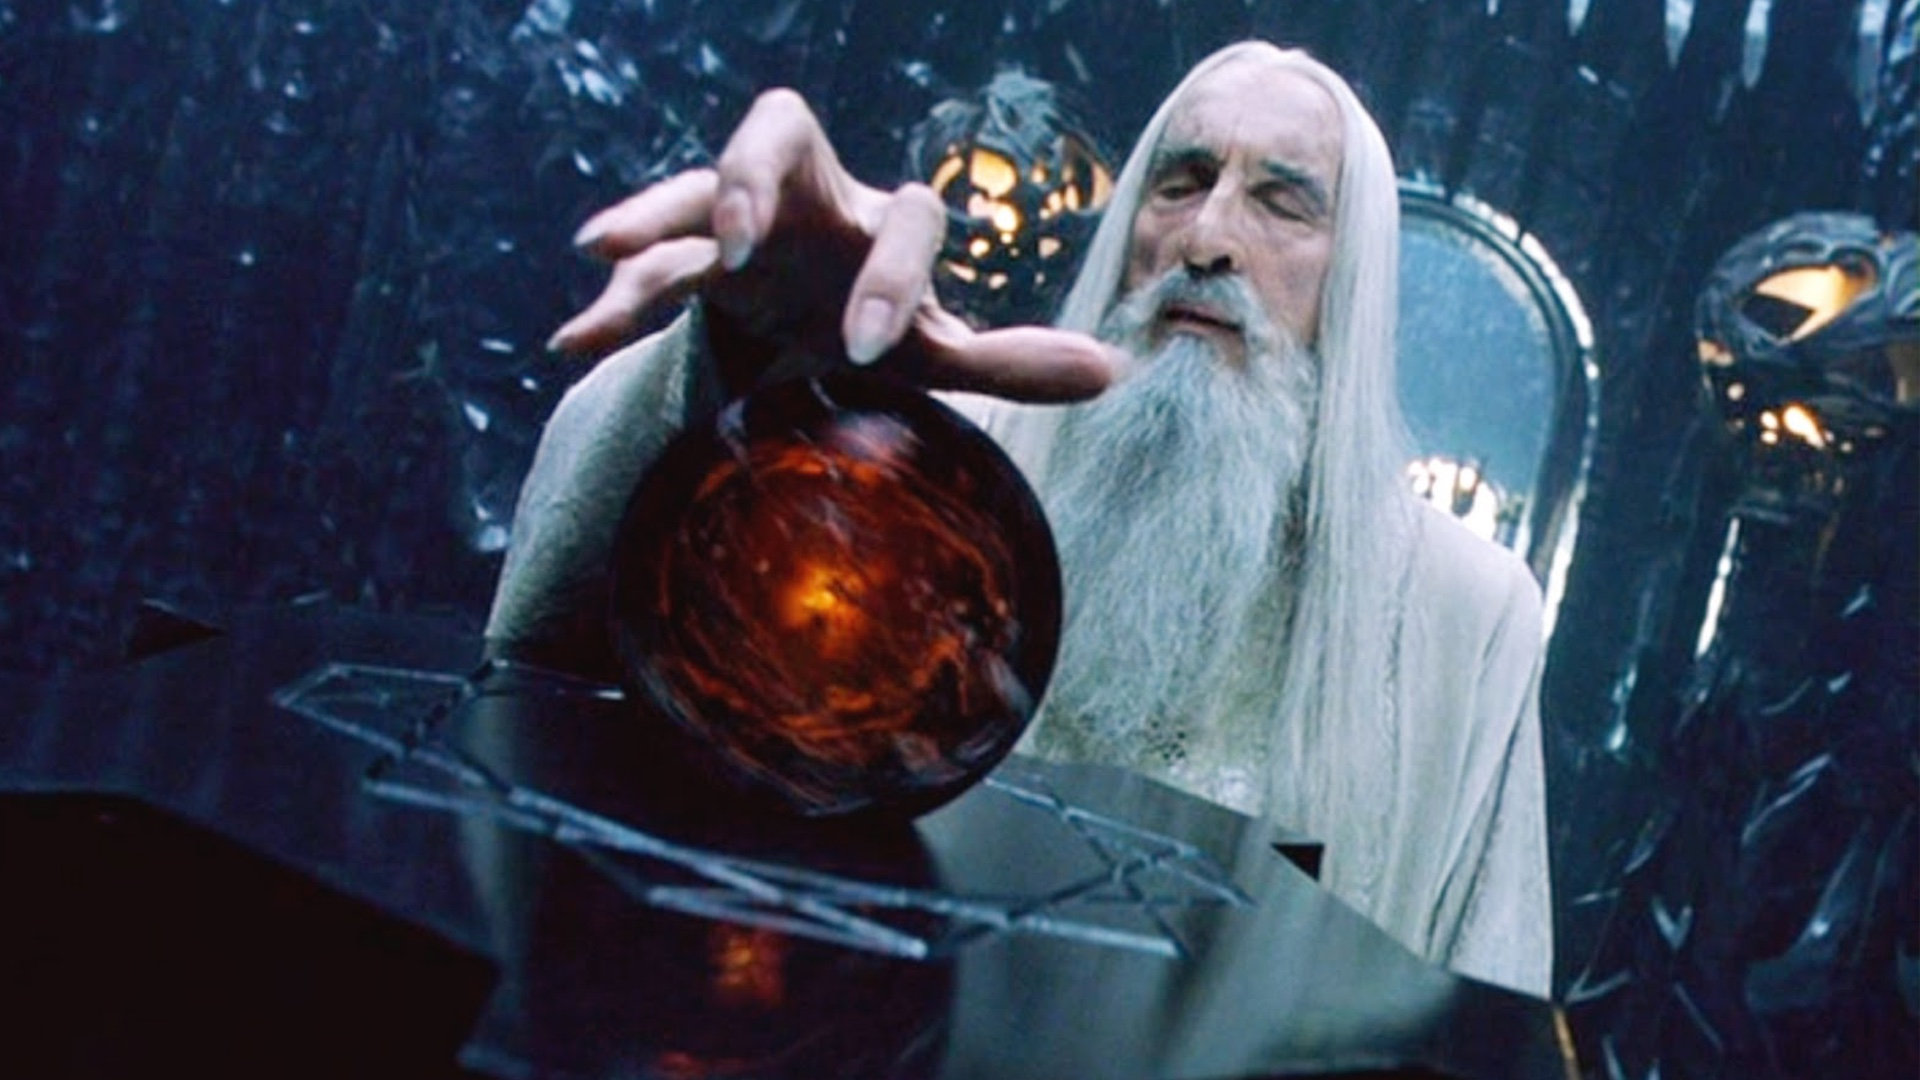 Christopher Lee as Saruman - LOTR